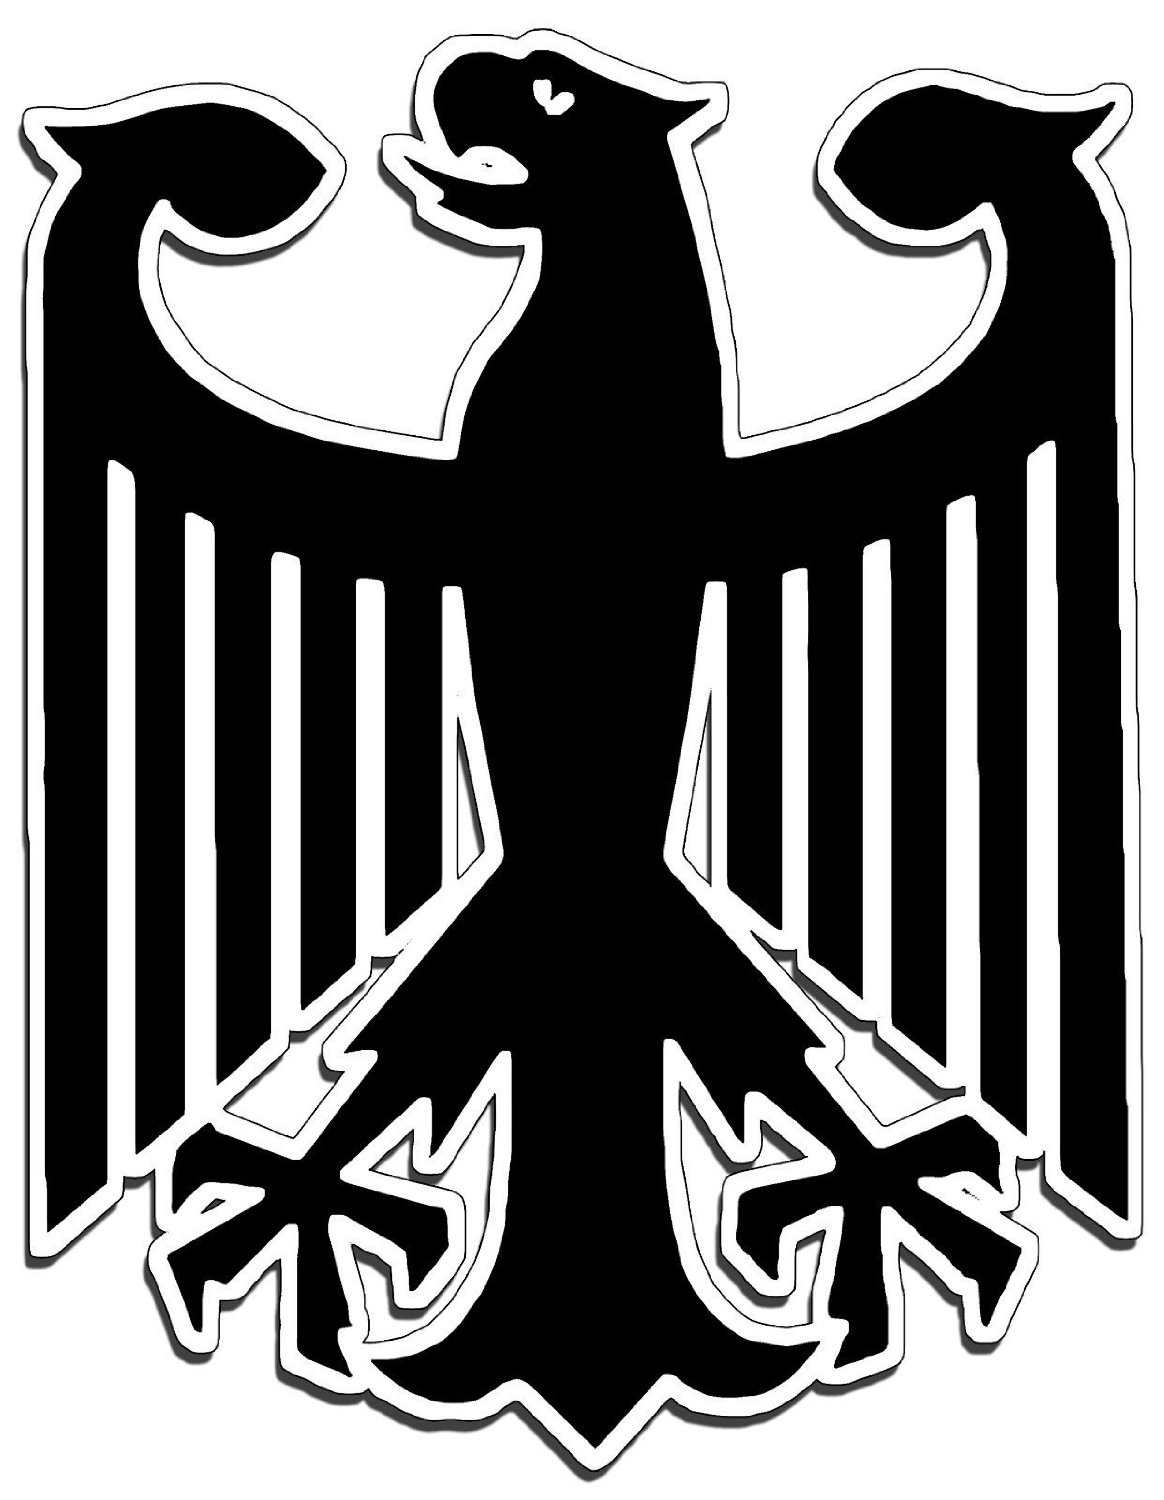 Buy Deutschland Germany Eagle Crest German Soccer Jersey Sweatshirt